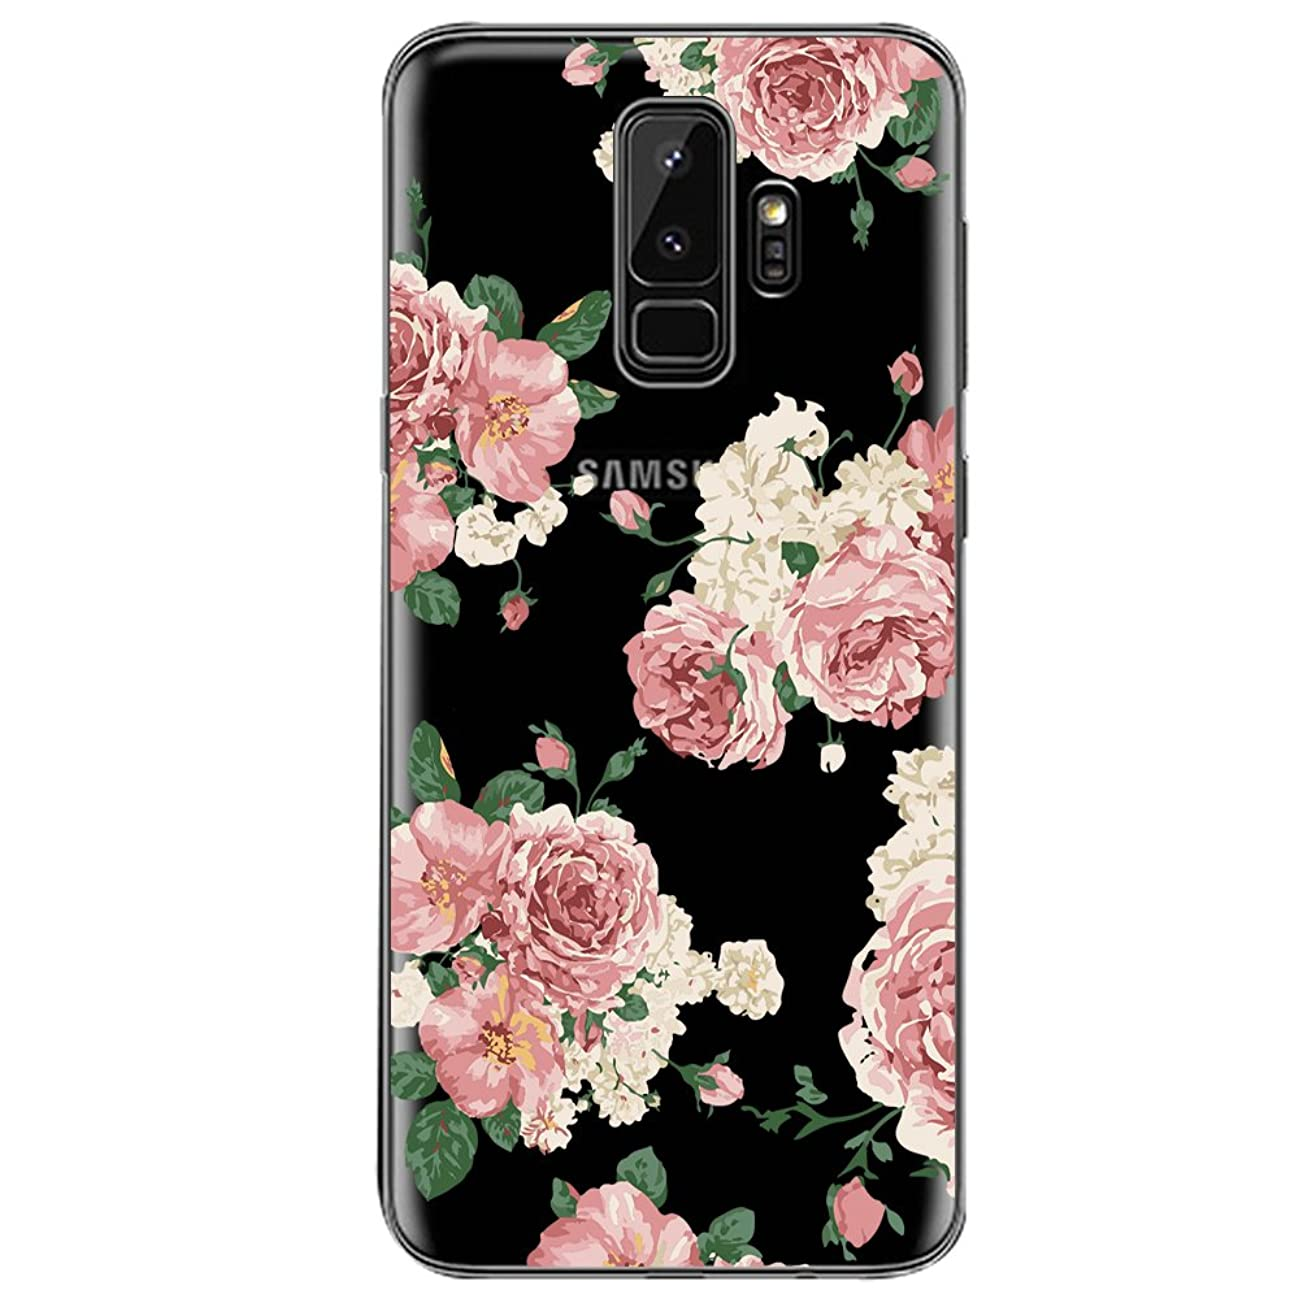 Case for Samsung Galaxy S9 Plus,Floral Pattern Clear TPU Phone case for S9 Plus